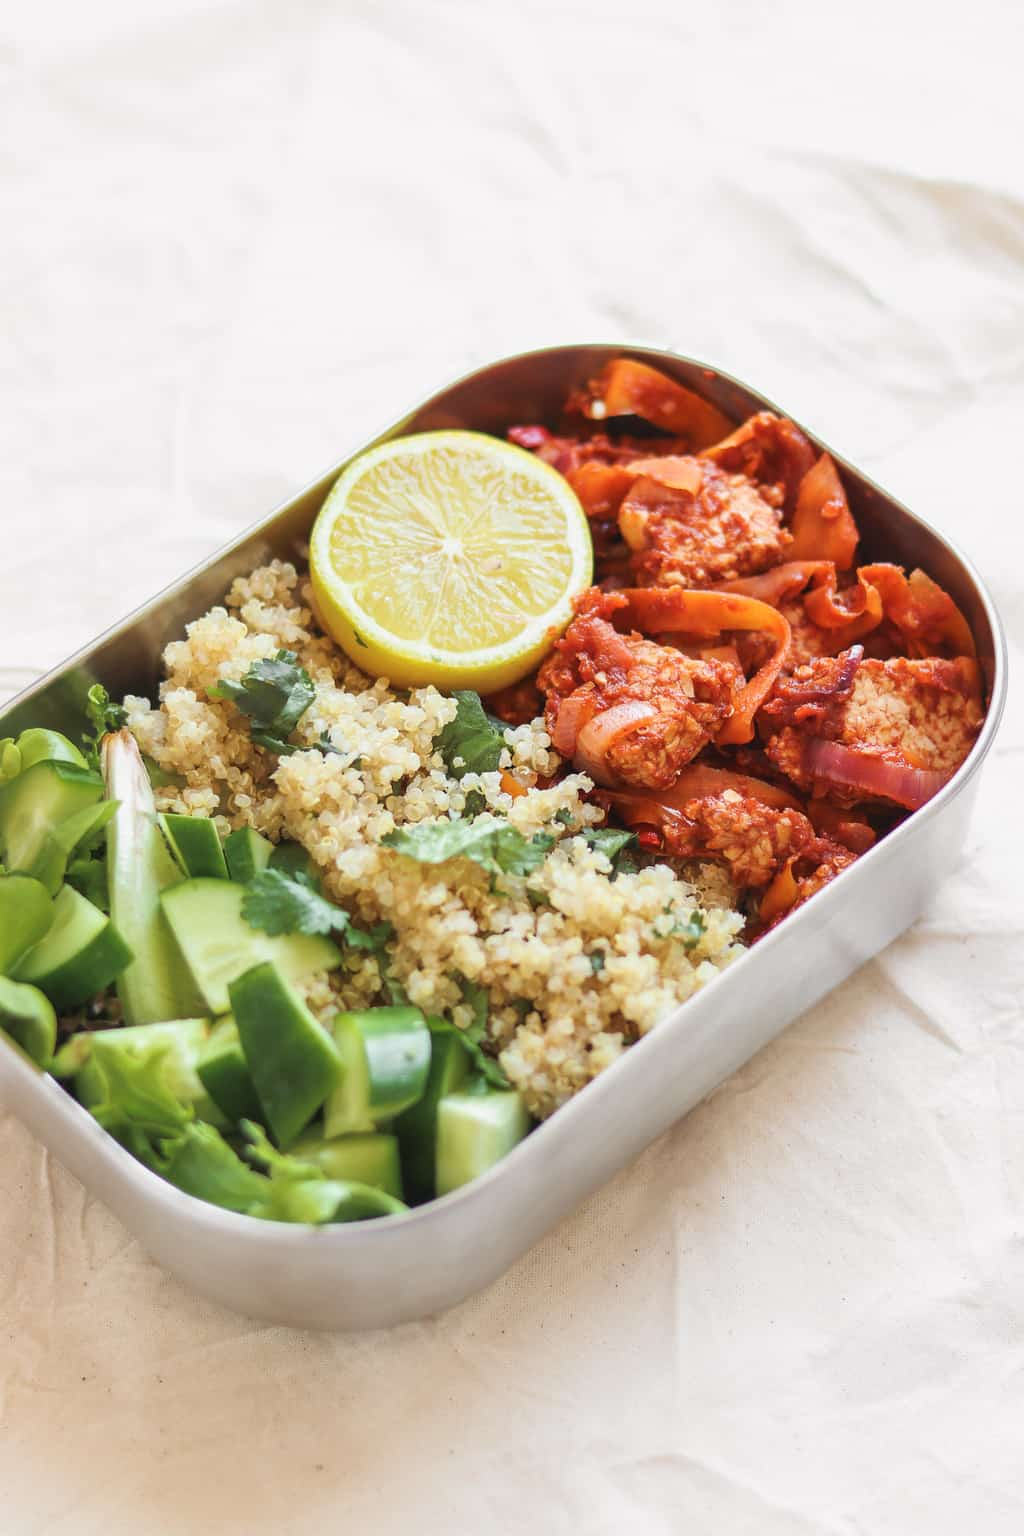 Vegan lunchbox with tempeh, quinoa and cucumbers